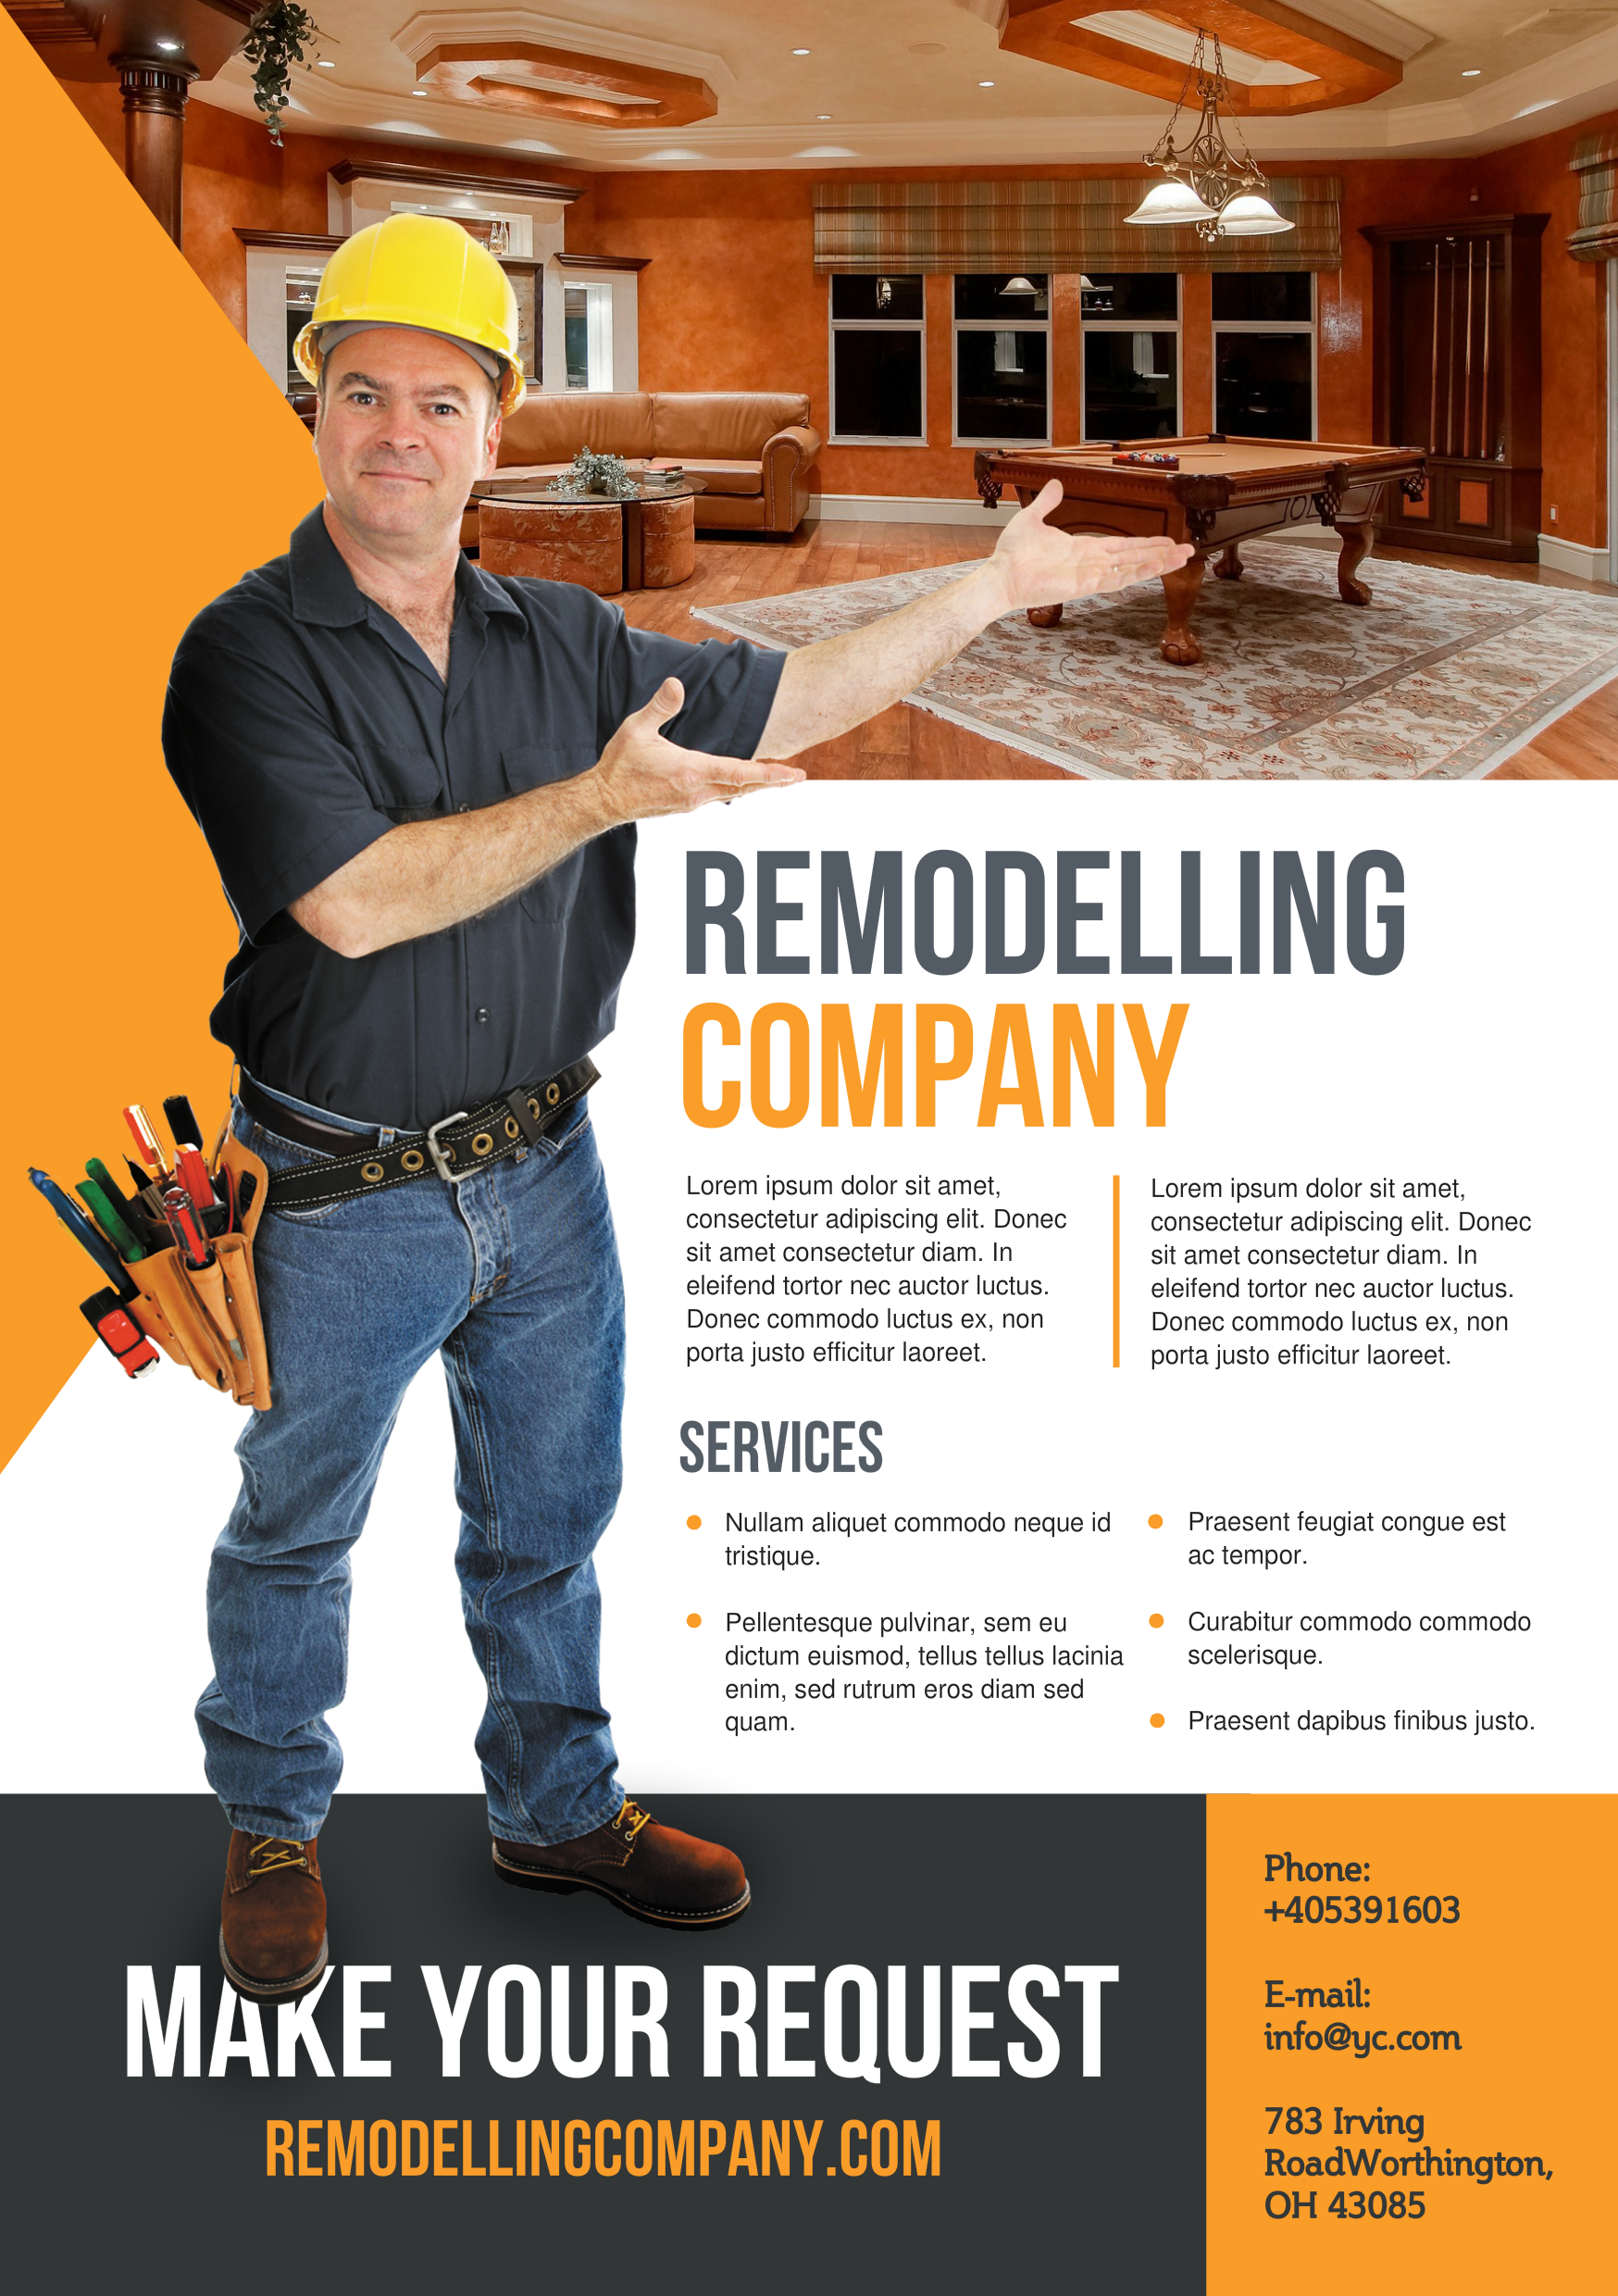 Remodeling A Promotional Flyer HttpPremadevideosComAFlyer